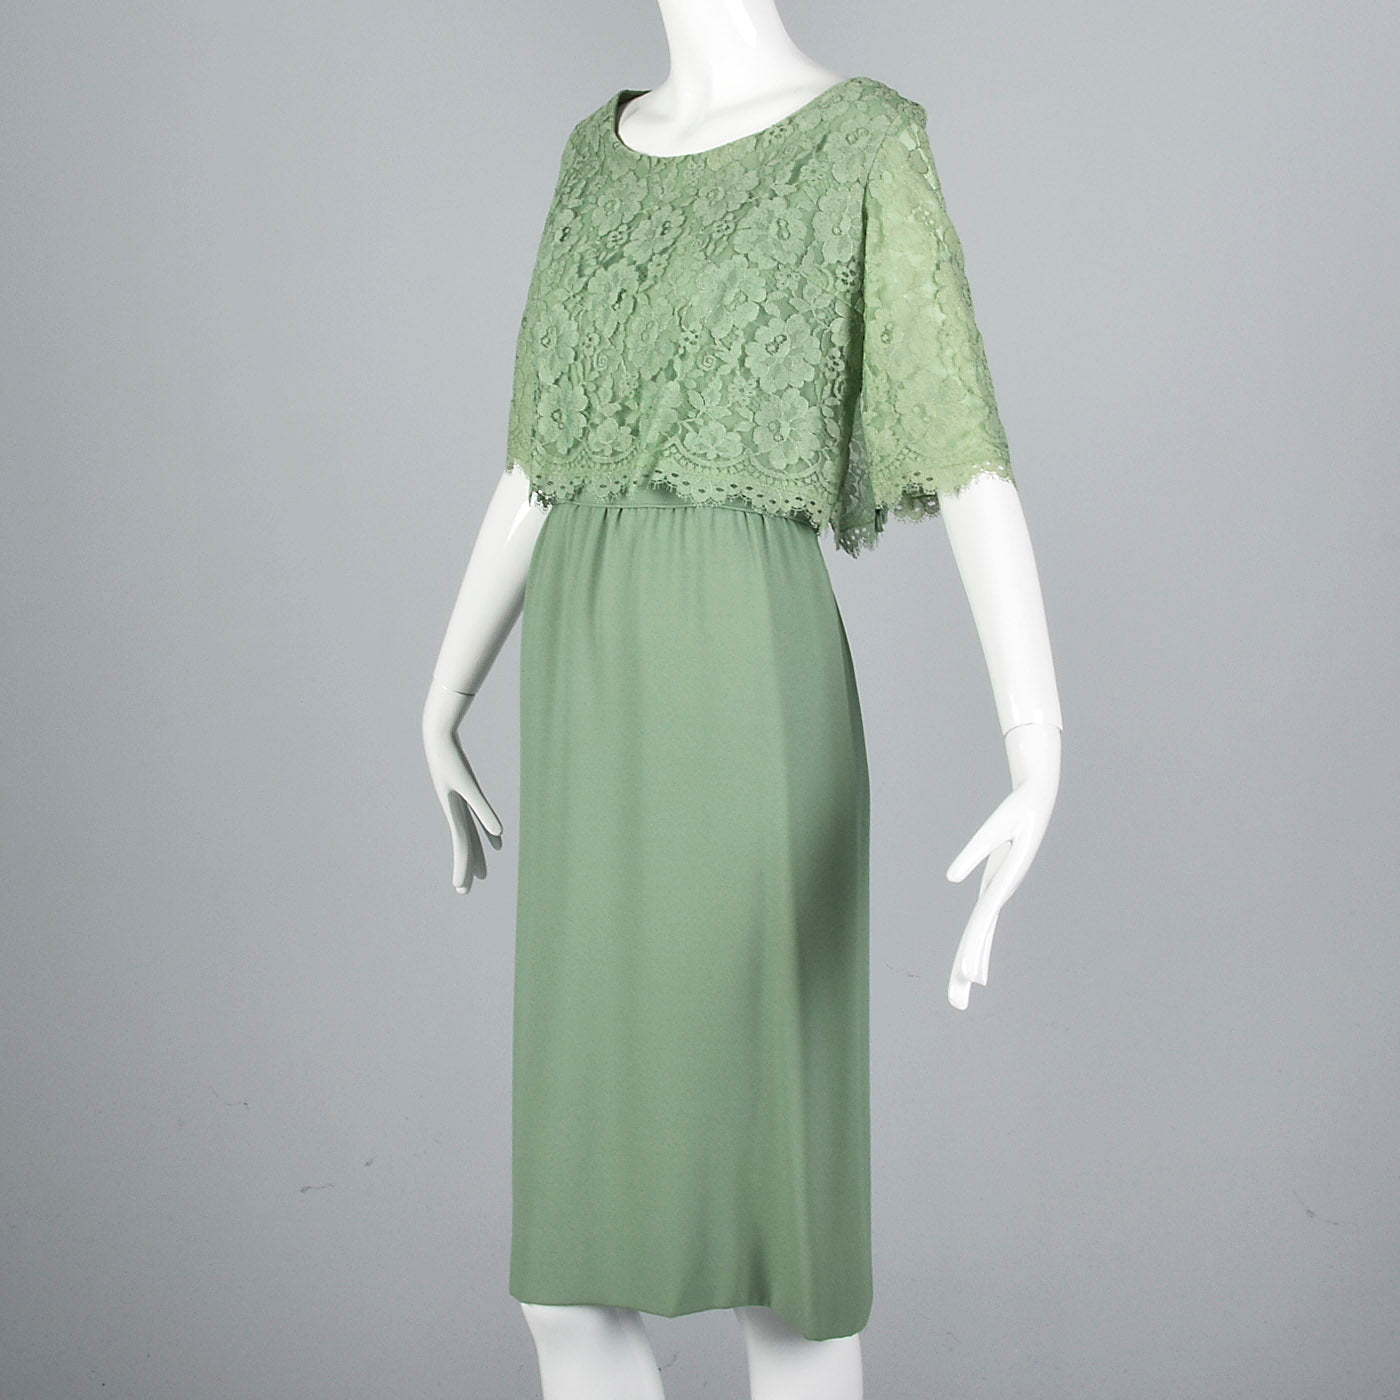 1960s Emma Domb Green Cocktail Dress